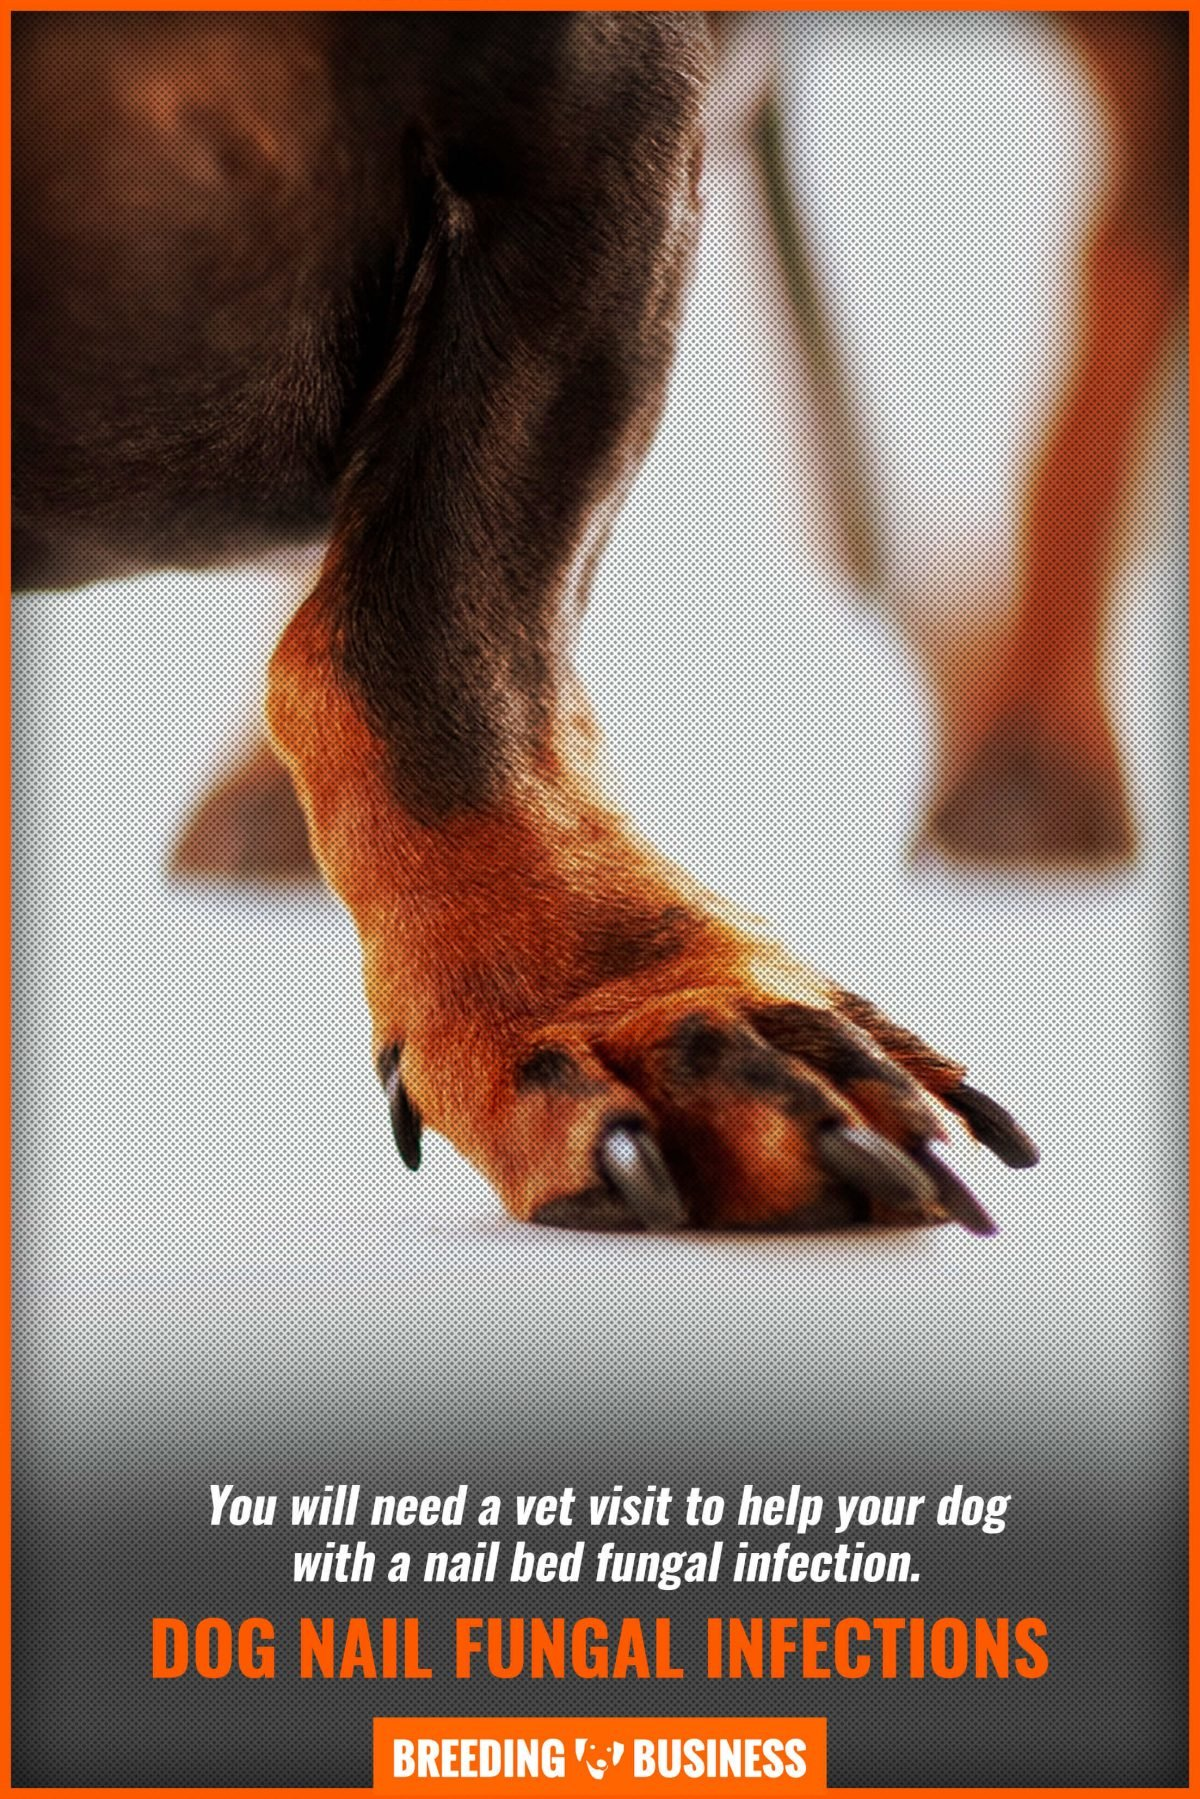 dog nail fungal infections